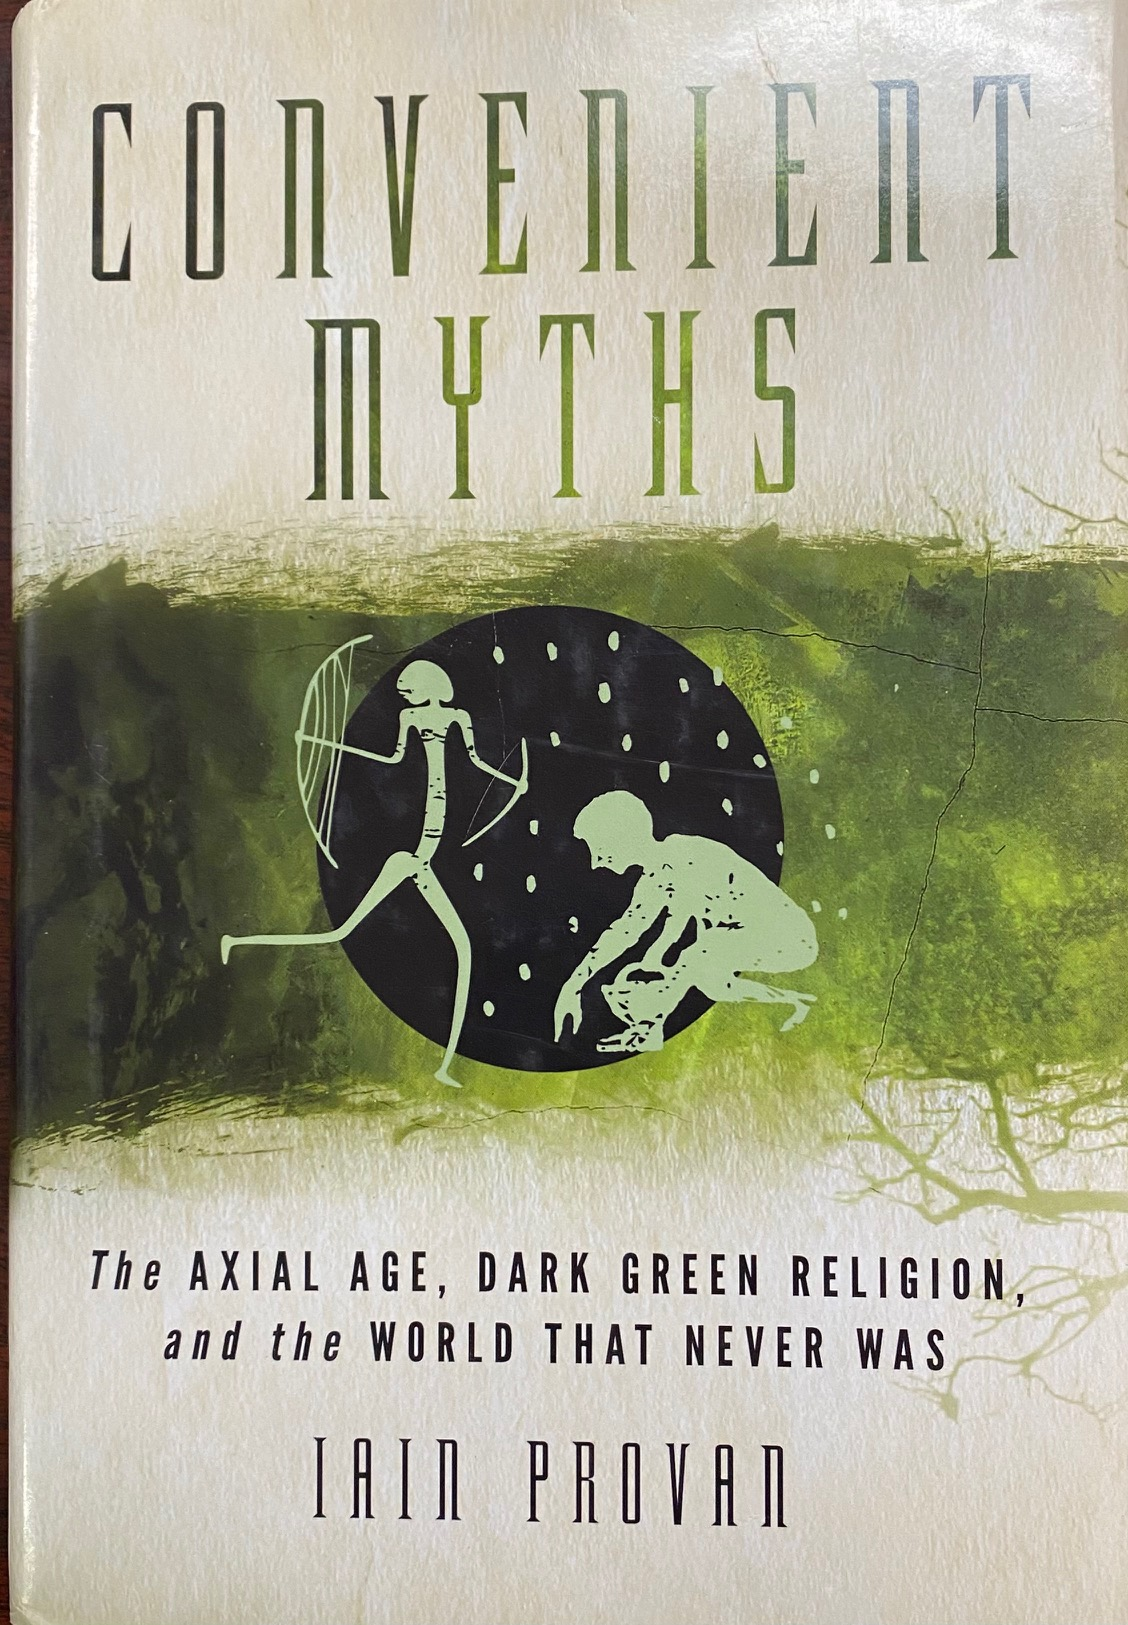 Image for Convenient Myths: The Axial Age, Dark Green Religion, and the World that Never Was